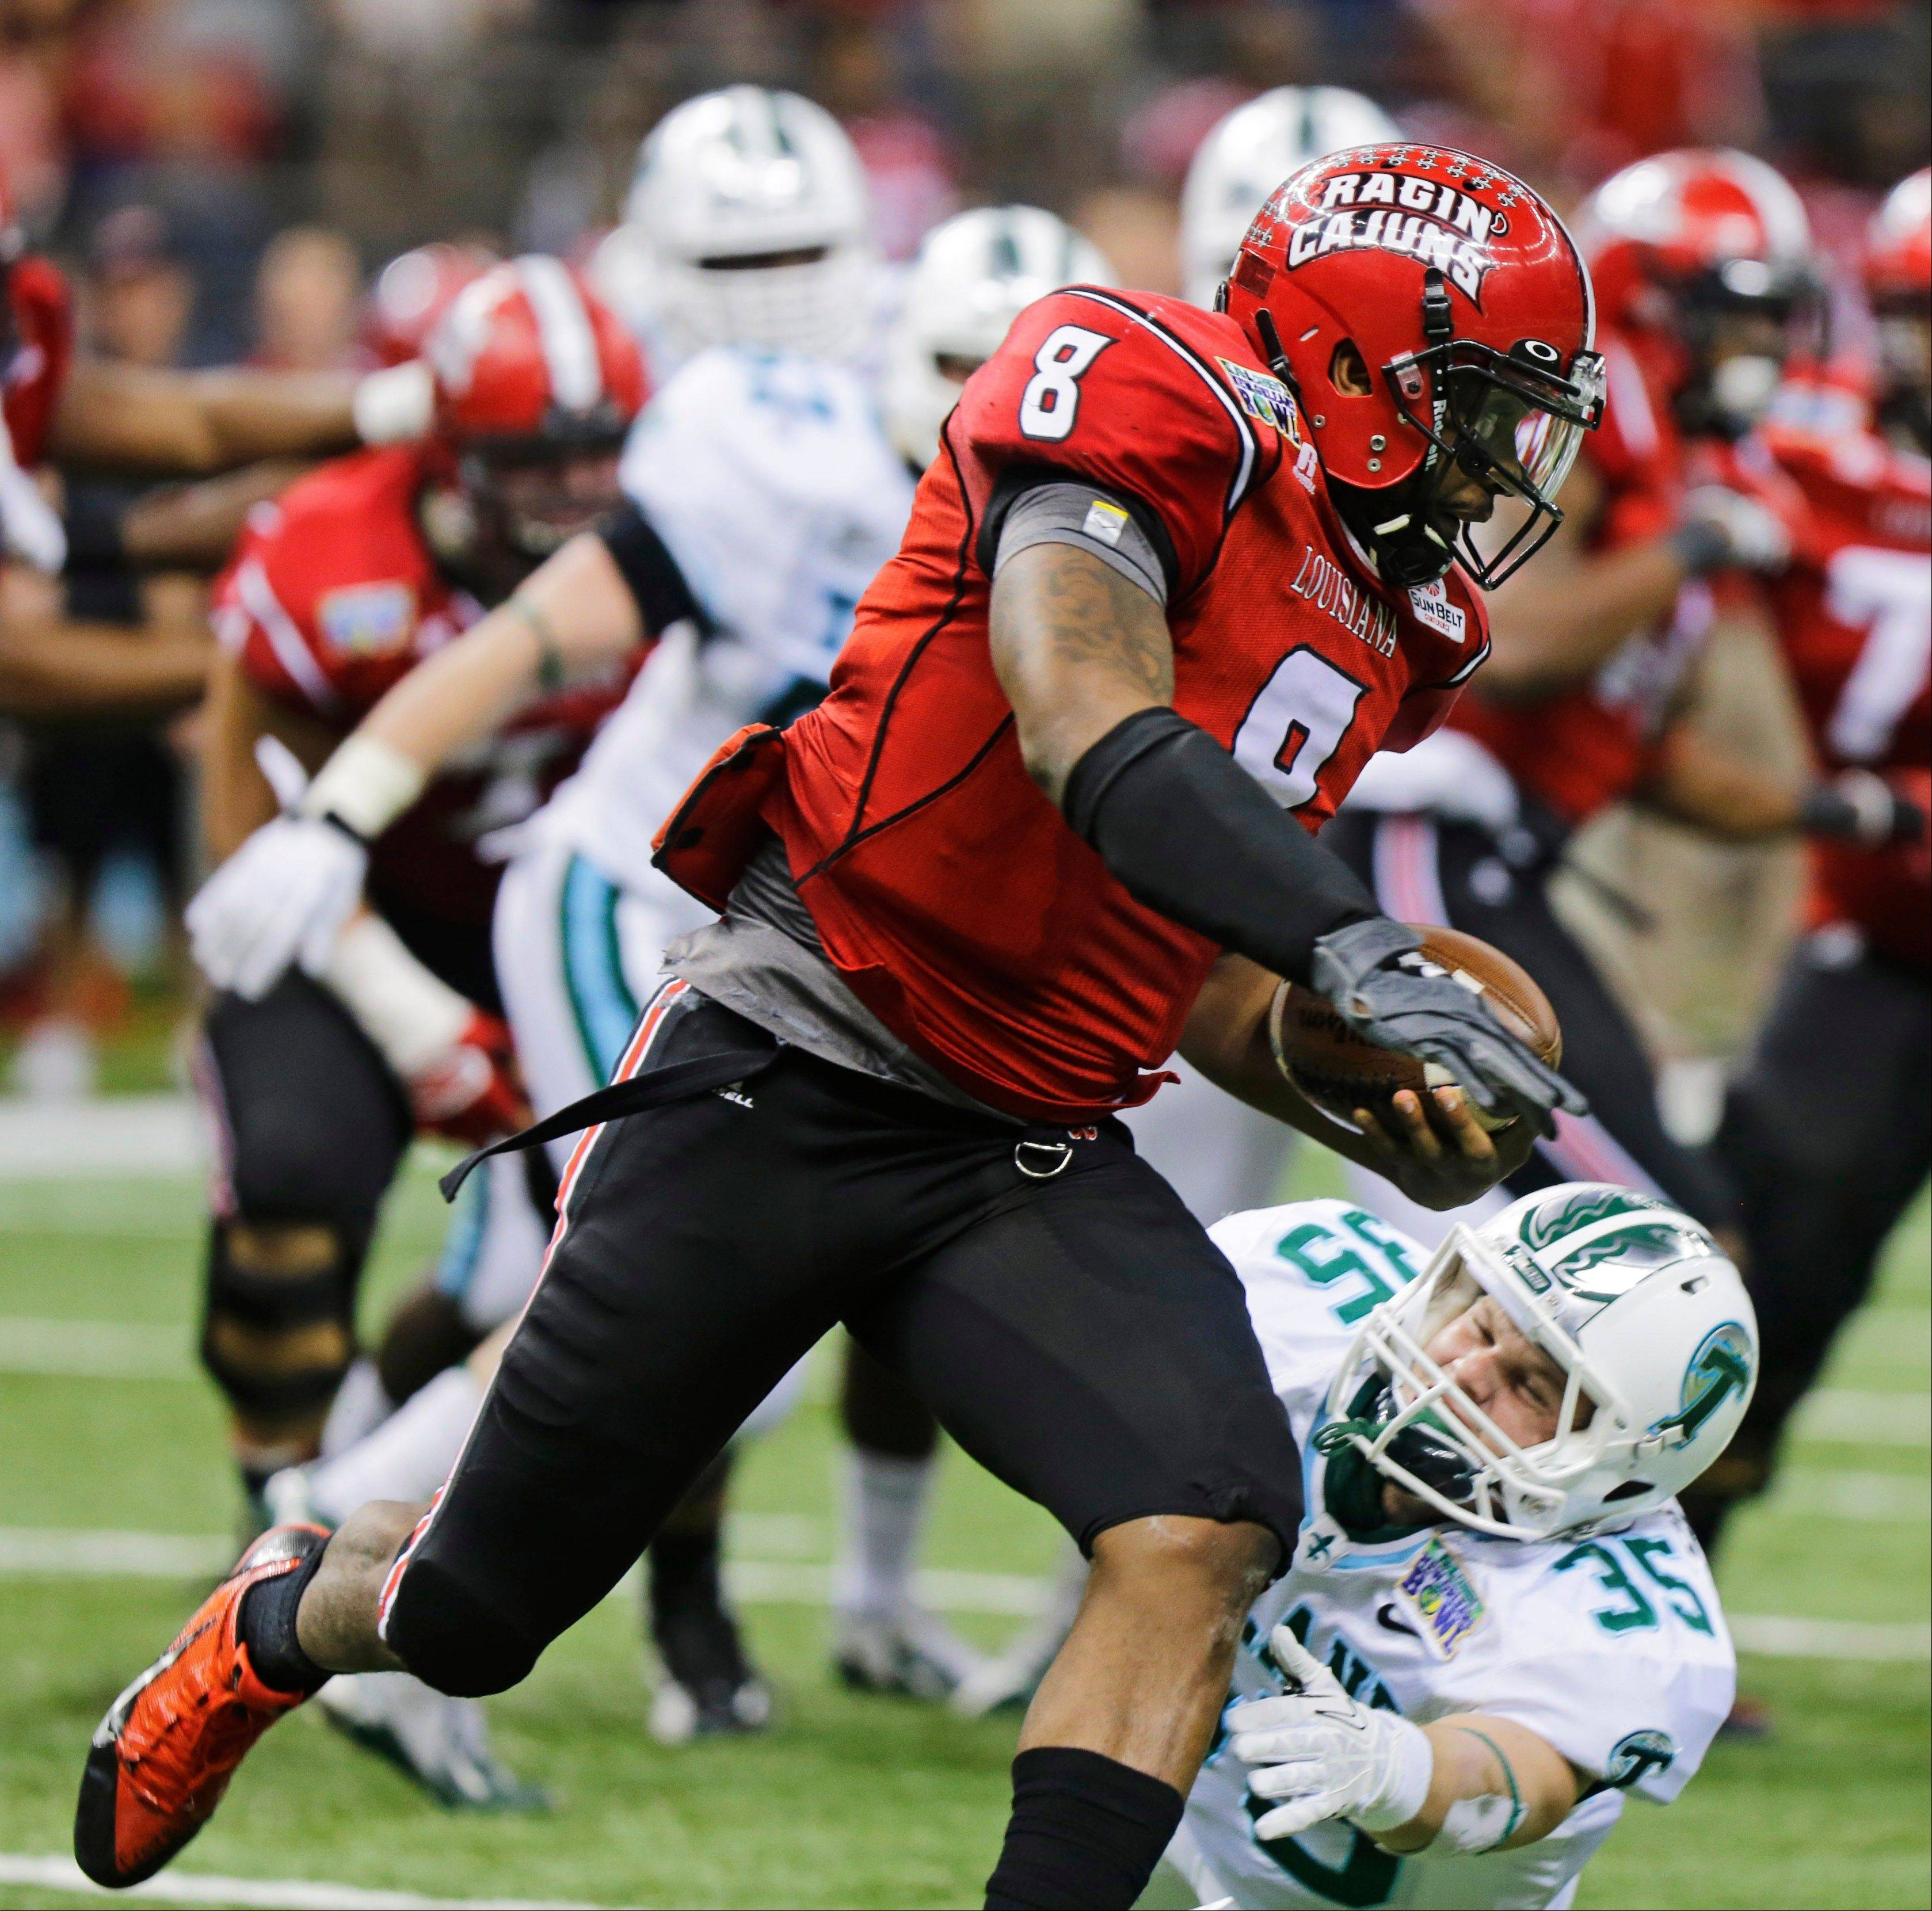 Louisiana-Lafayette quarterback Terrance Broadway gets around Tulane safety Sam Scofield during the second half of the New Orleans Bowl on Saturday.